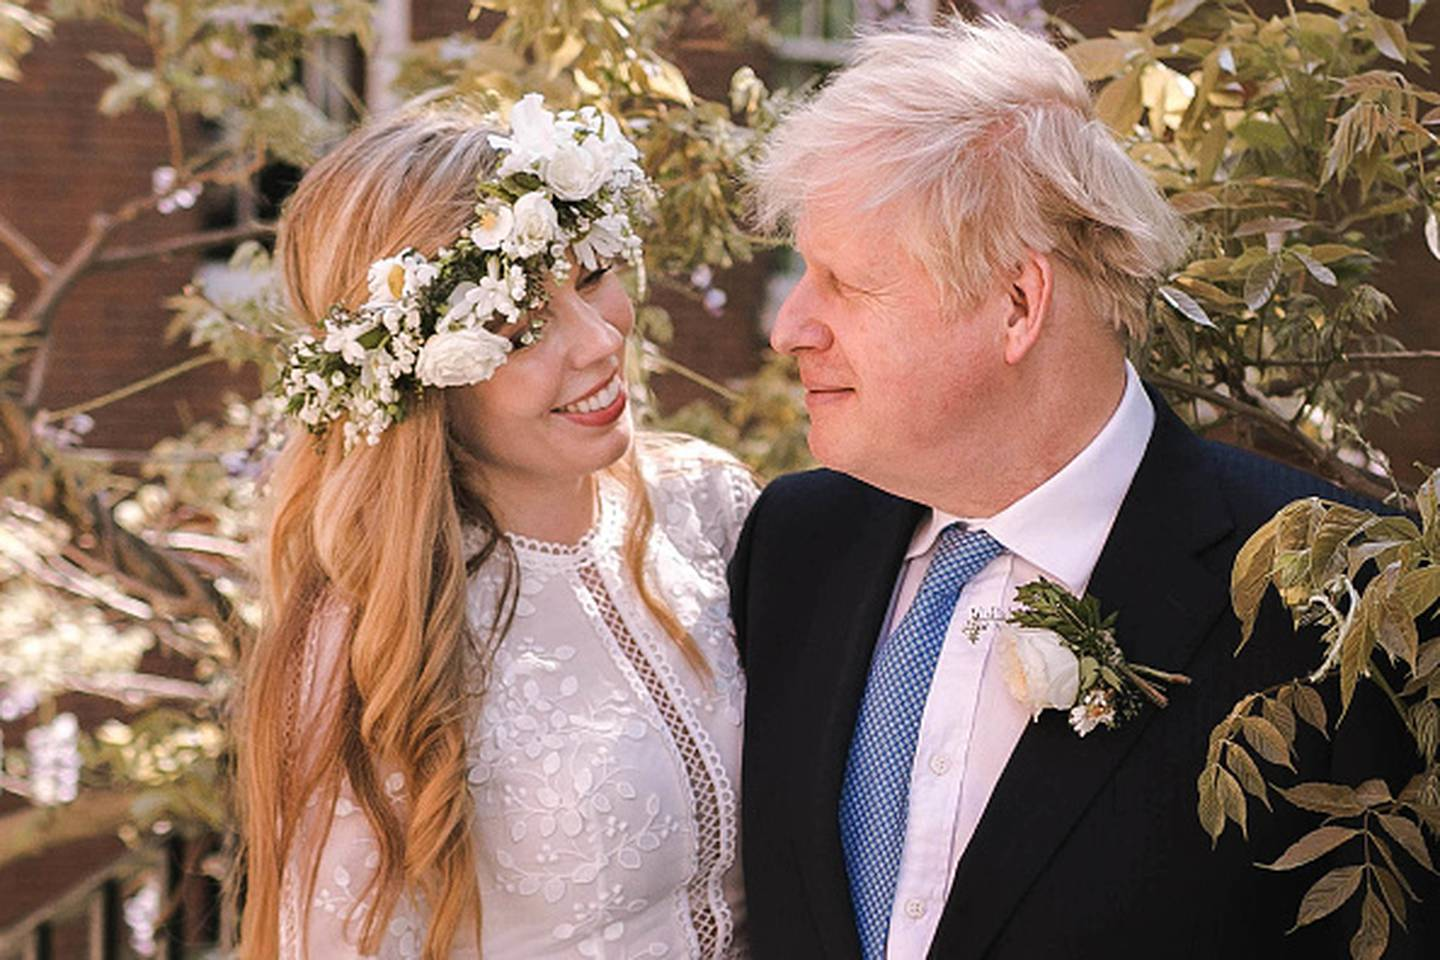 Boris Johnson and his wife Carrie Johnson were married in May. Photo / Getty Images